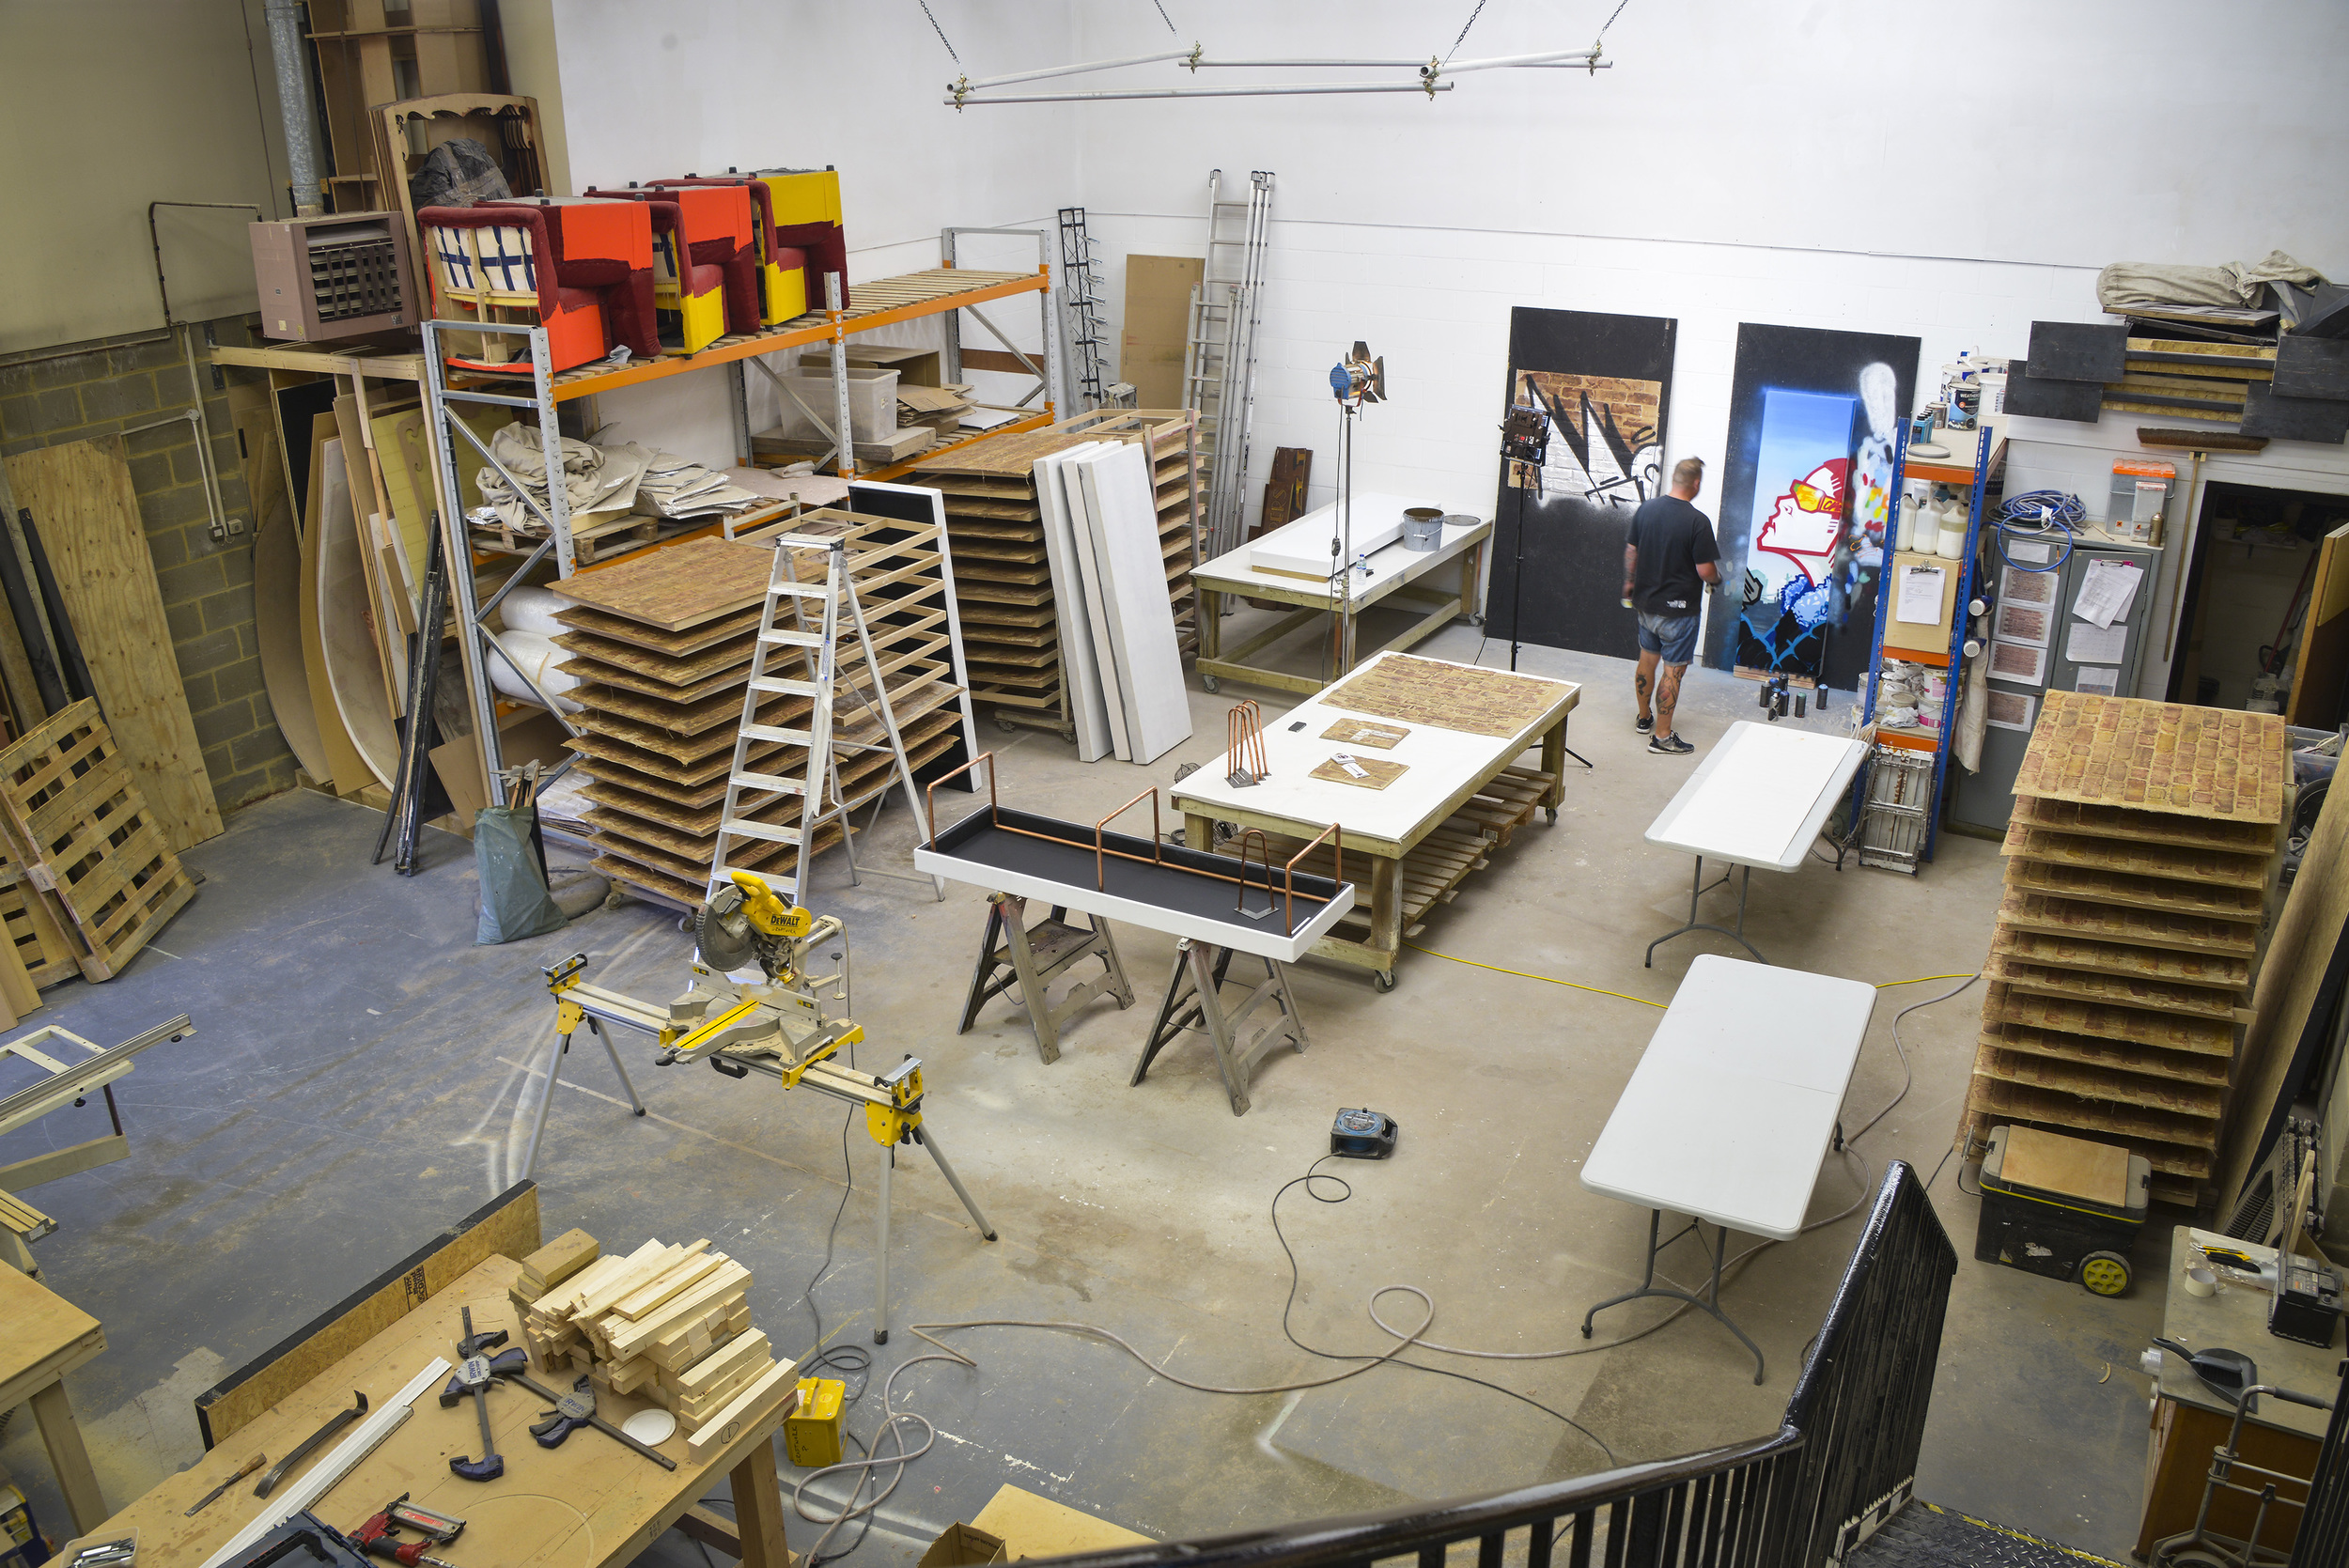 Craftwork Projects' art space, as seen from above. Aroe is pictured in the background.